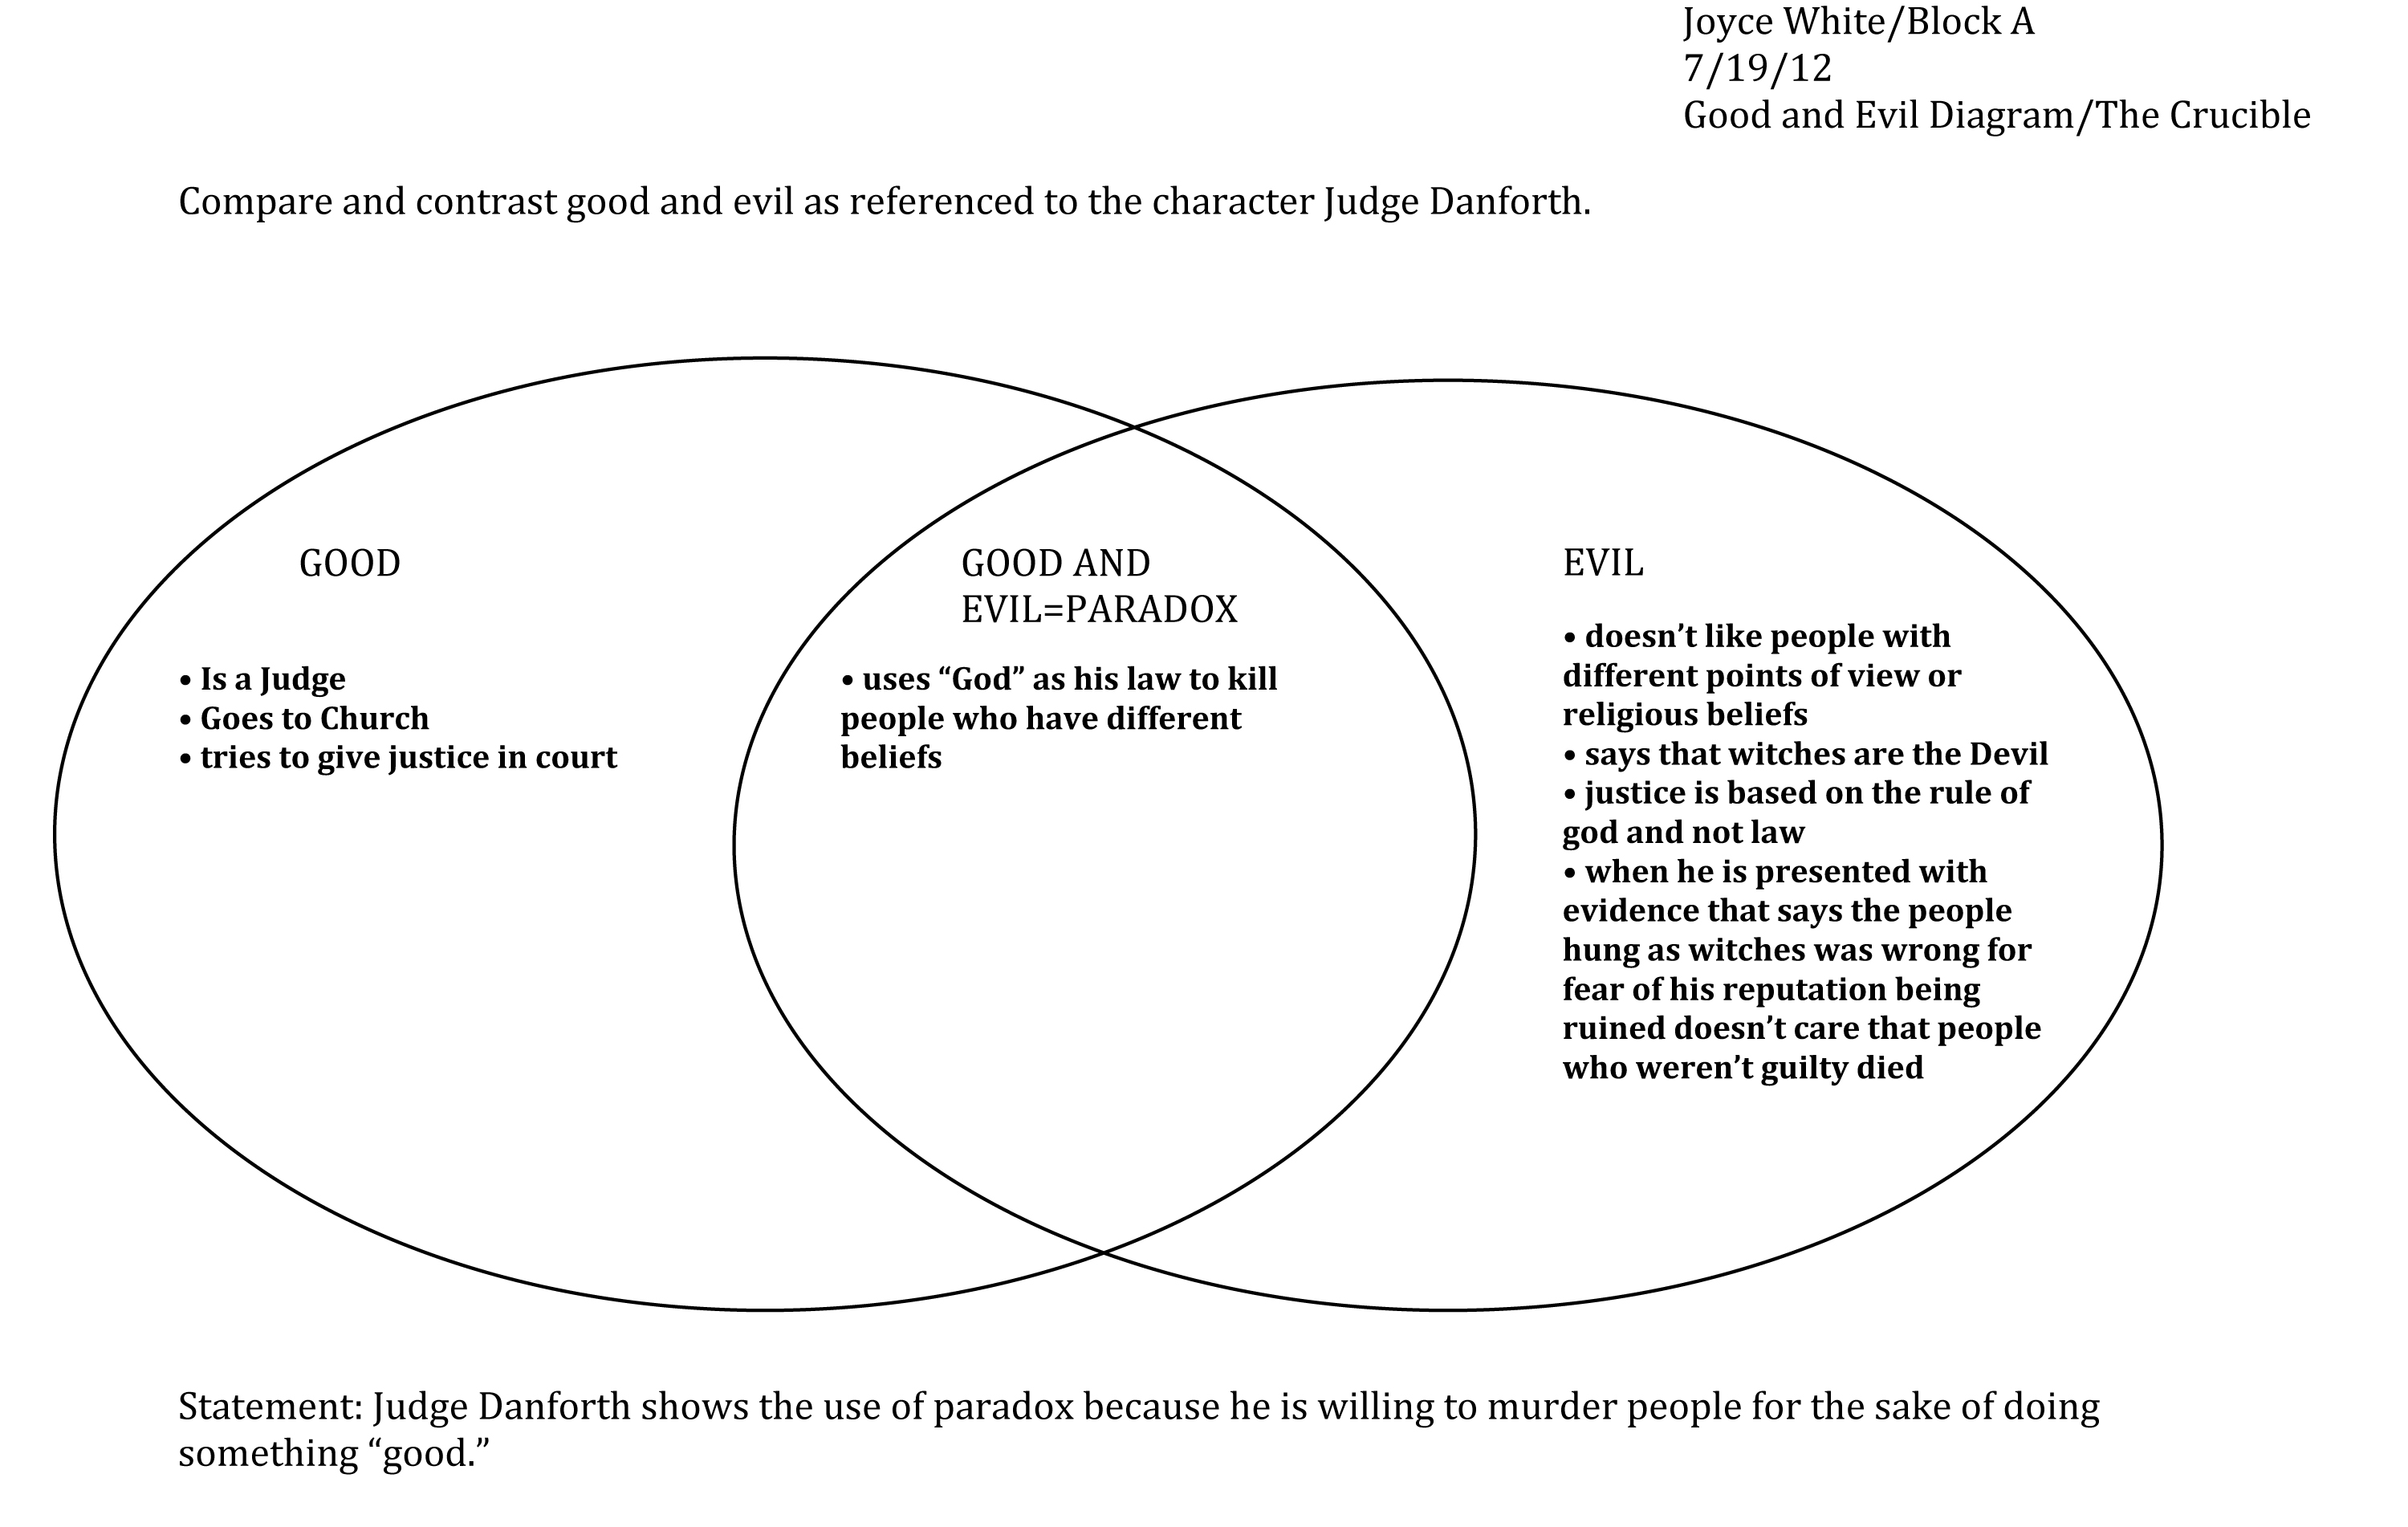 compare and contrast using venn diagram 2004 ford taurus radio wiring sample of the character judge danforth